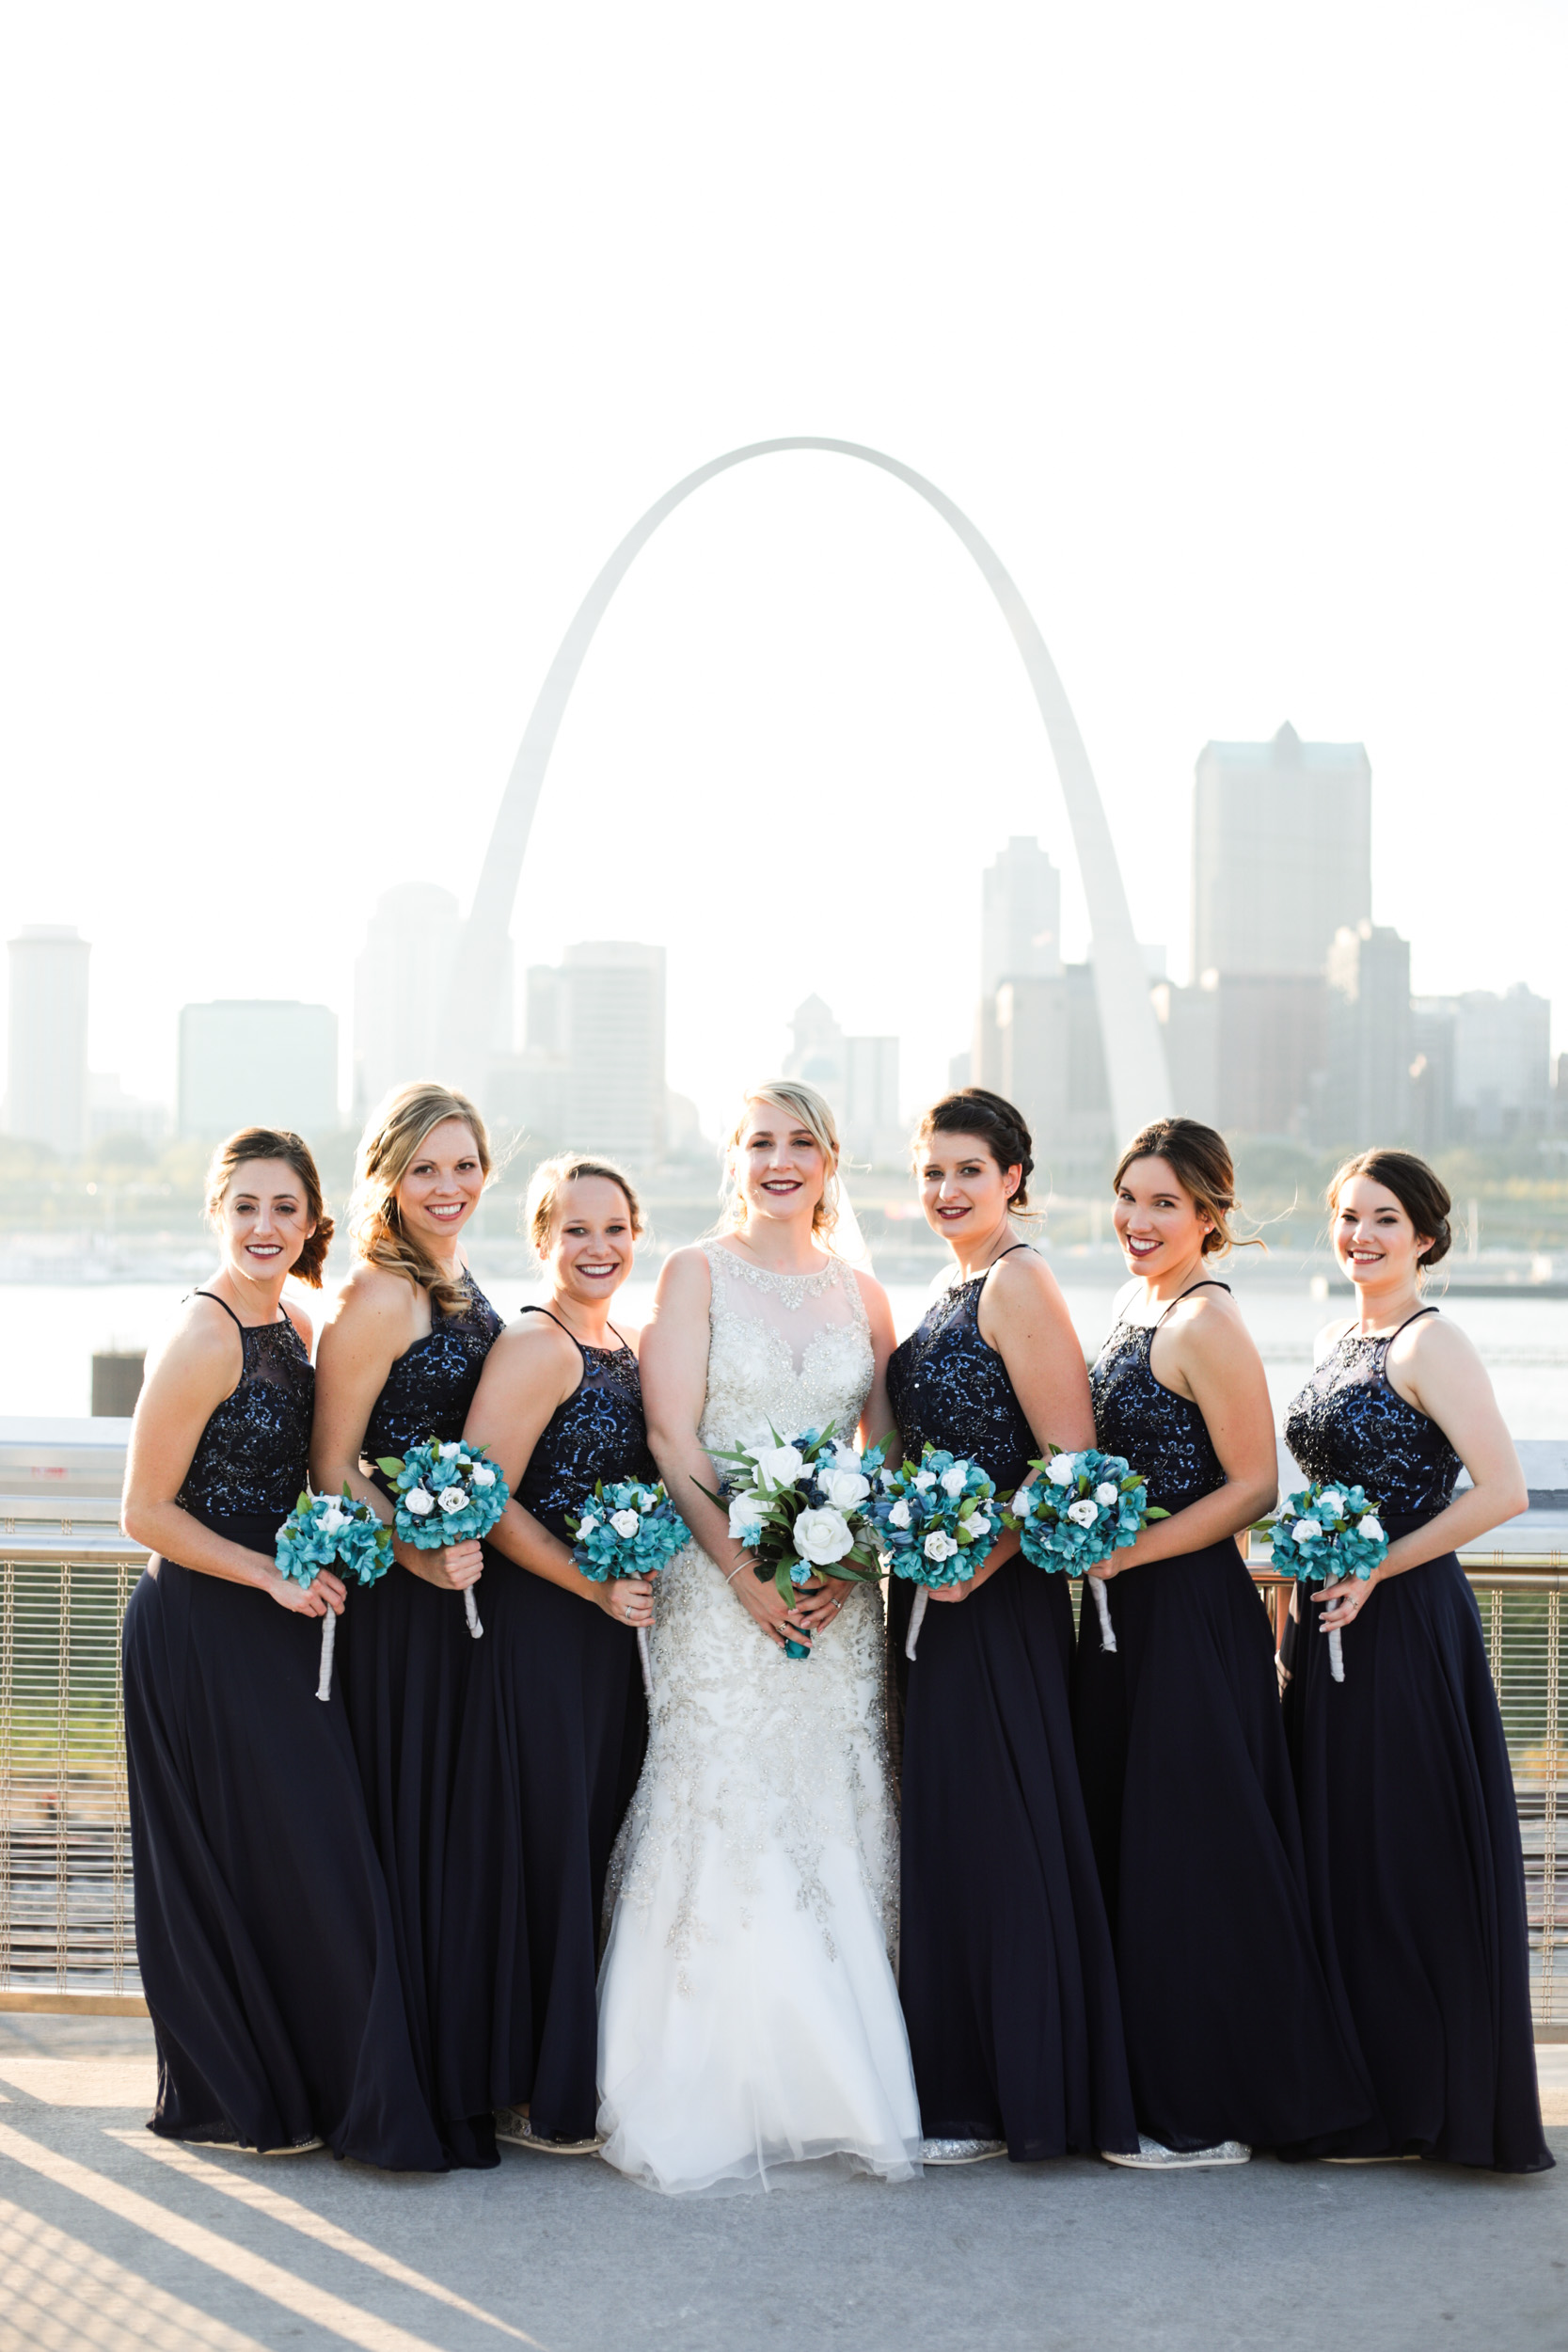 Winstanley Baptist Church Wedding and Four Points by Sheraton Reception Photos by St Louis Wedding Photographers and Videographers Oldani Photography 132.jpg